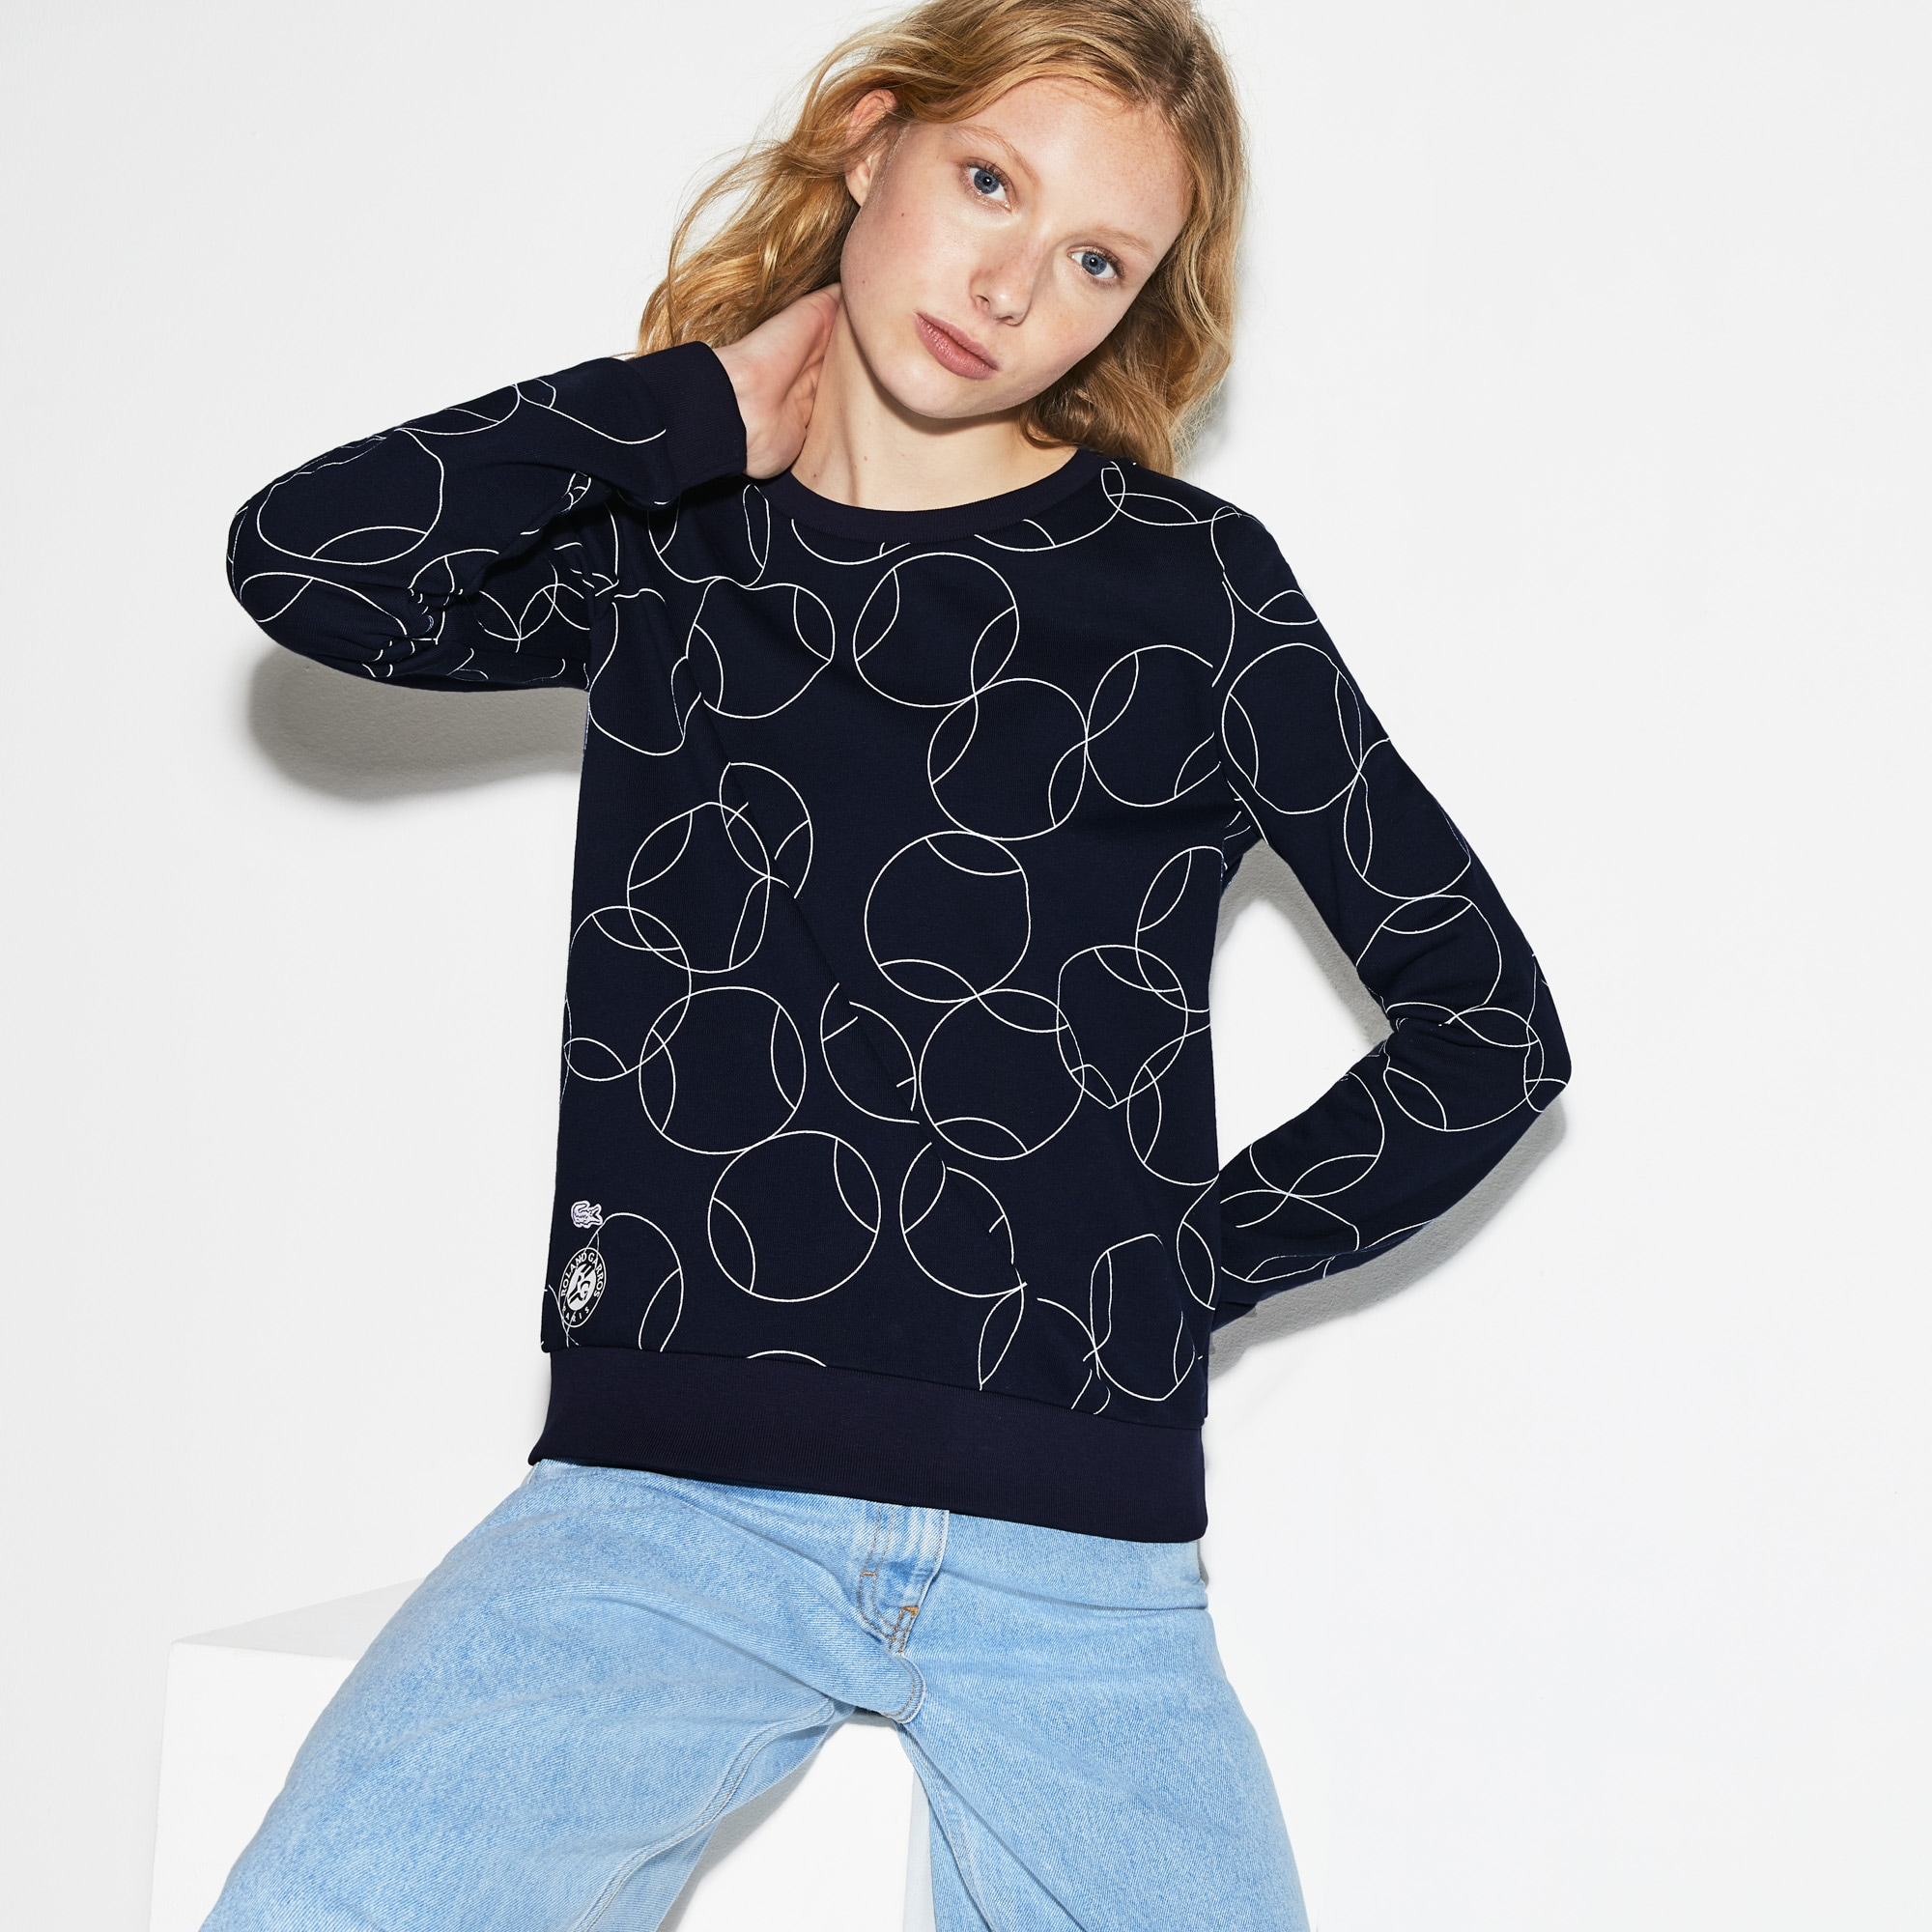 Women's Lacoste SPORT French Open Edition Print Fleece Sweatshirt